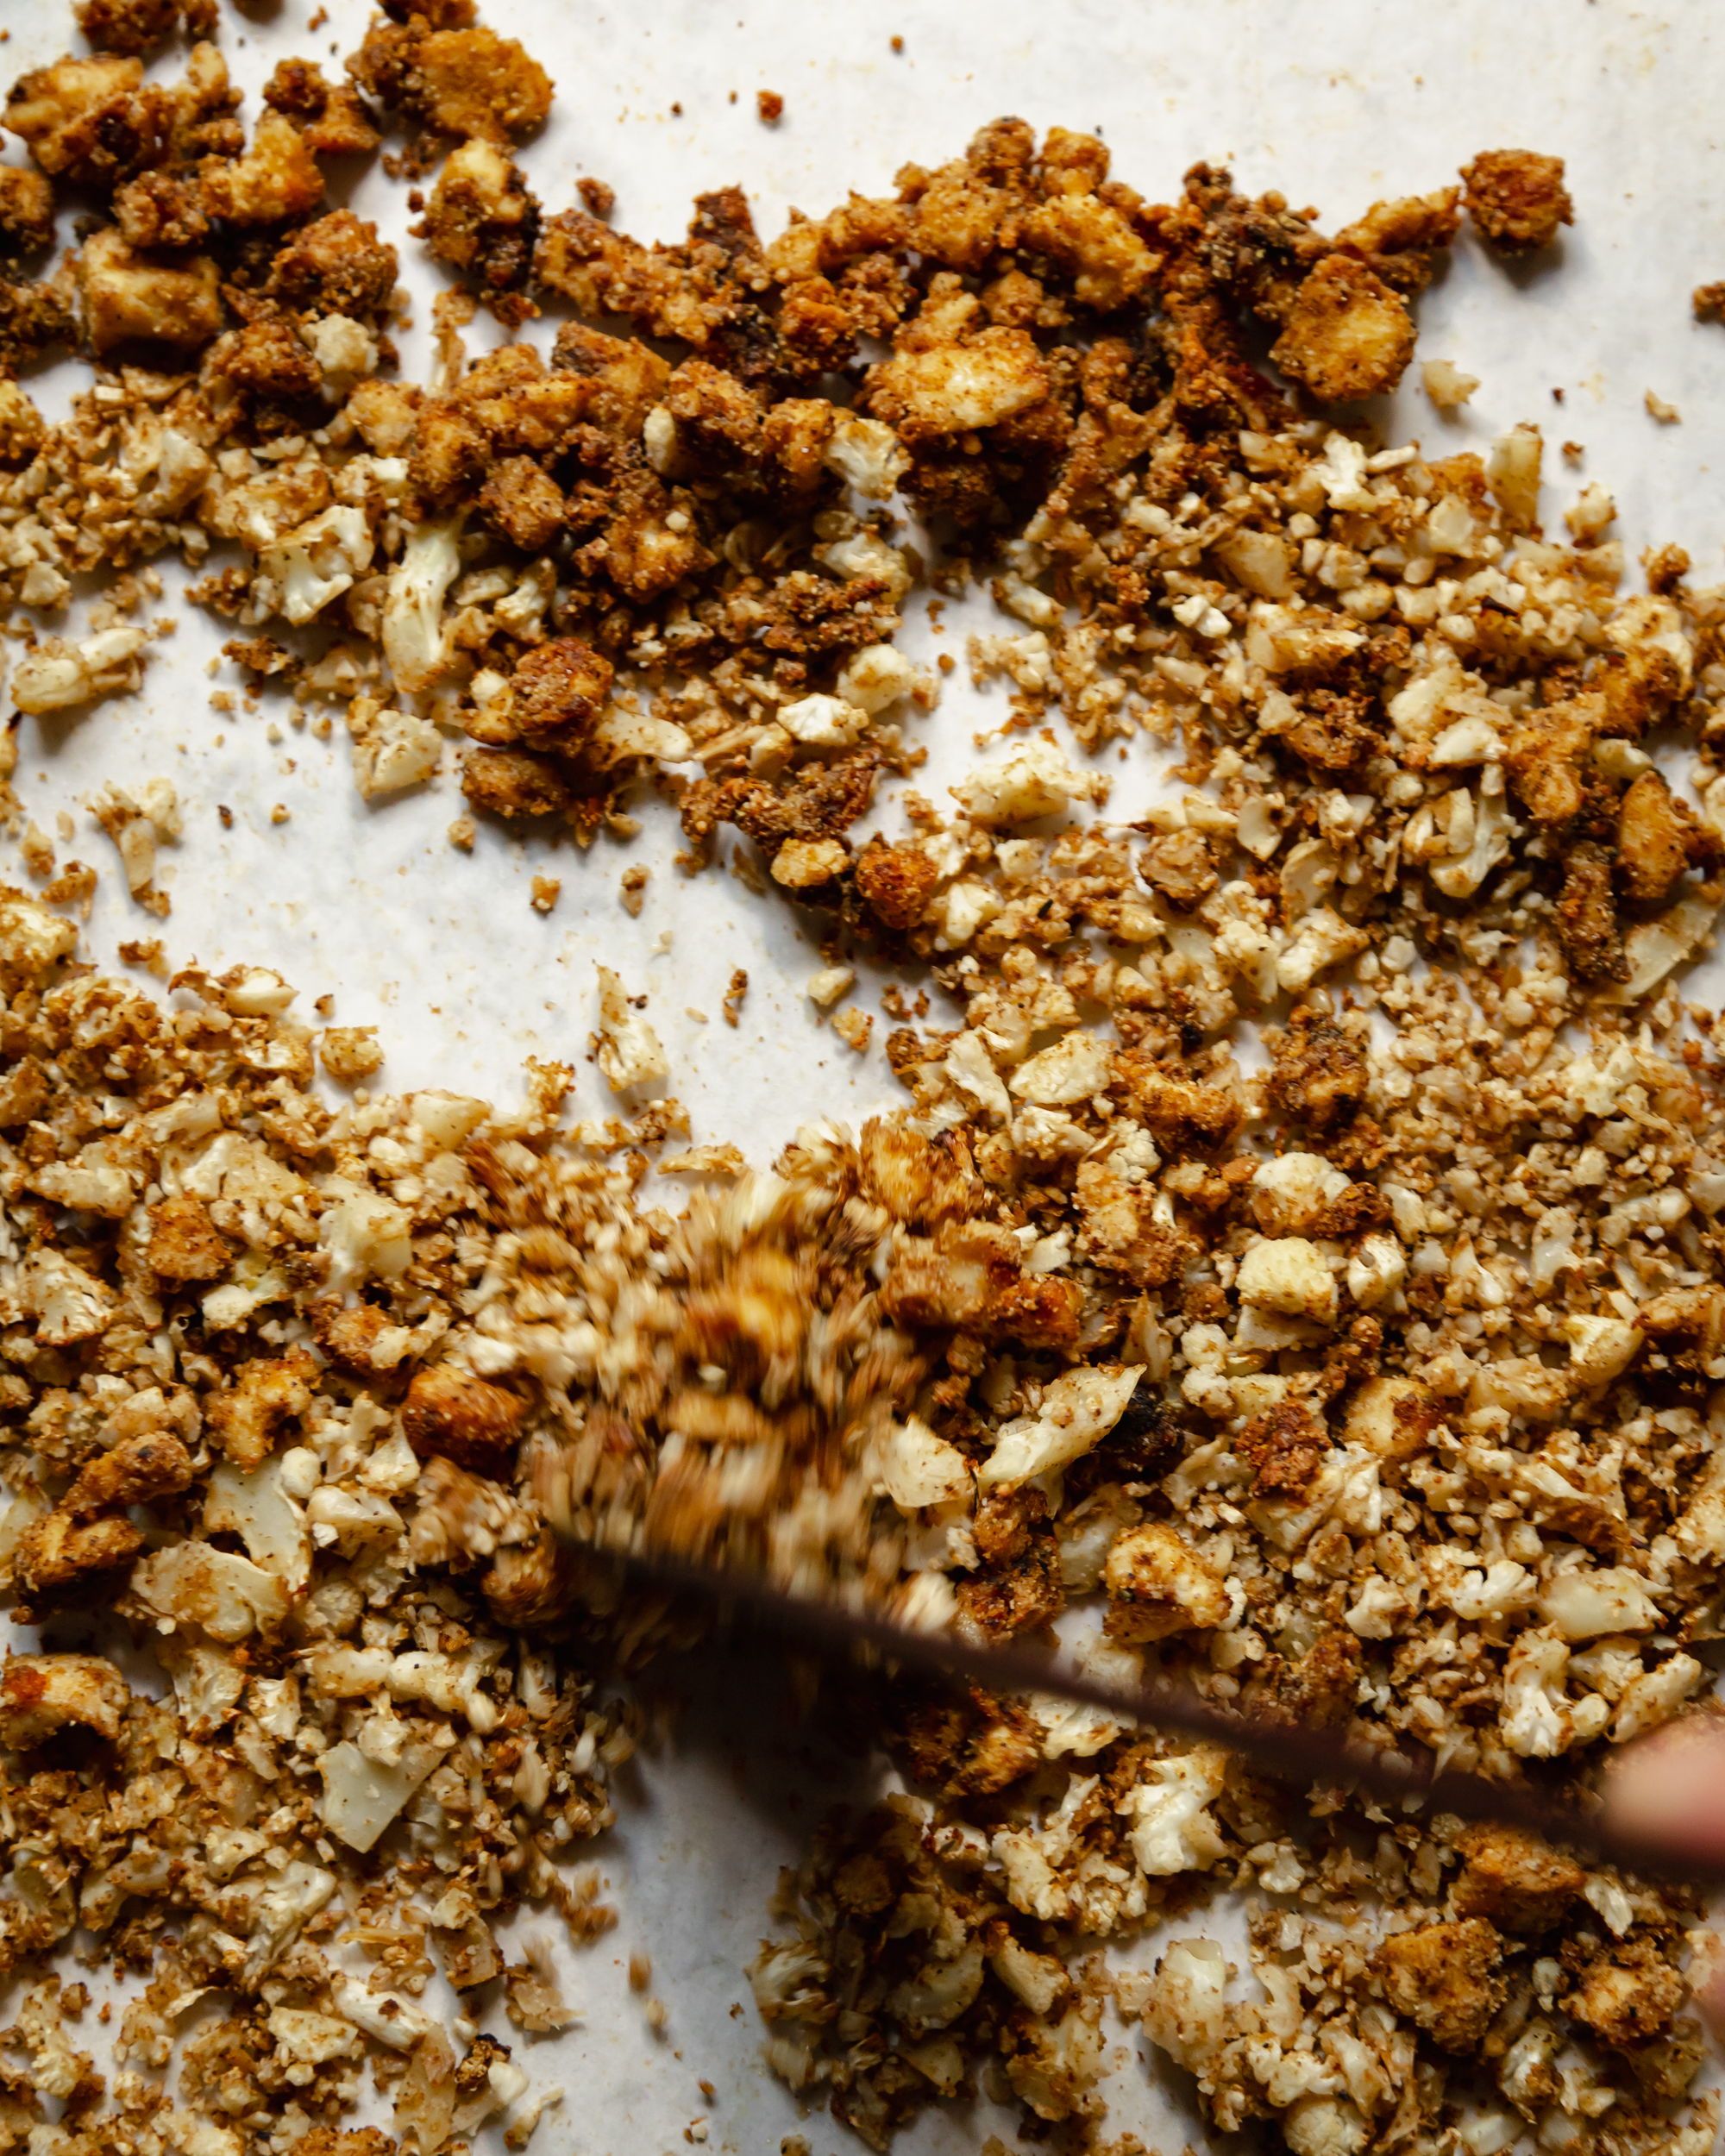 An overhead shot of roasted cauliflower rice and crispy coated bits of tofu being stirred up on a parchment-lined baking sheet.